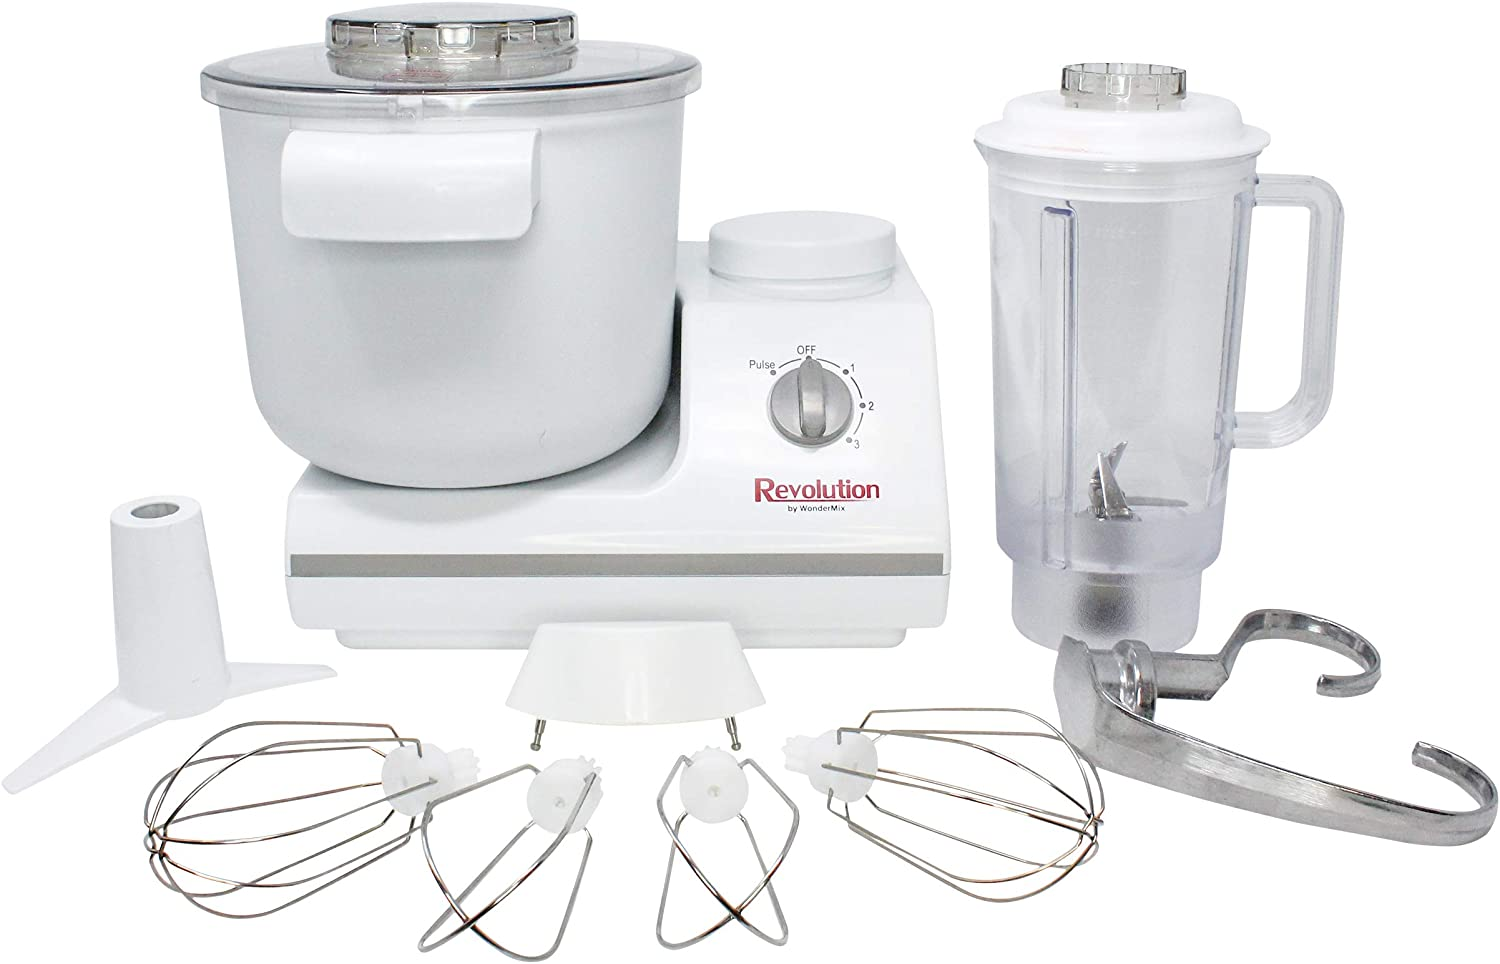 WonderMix Revolution Kitchen Mixer